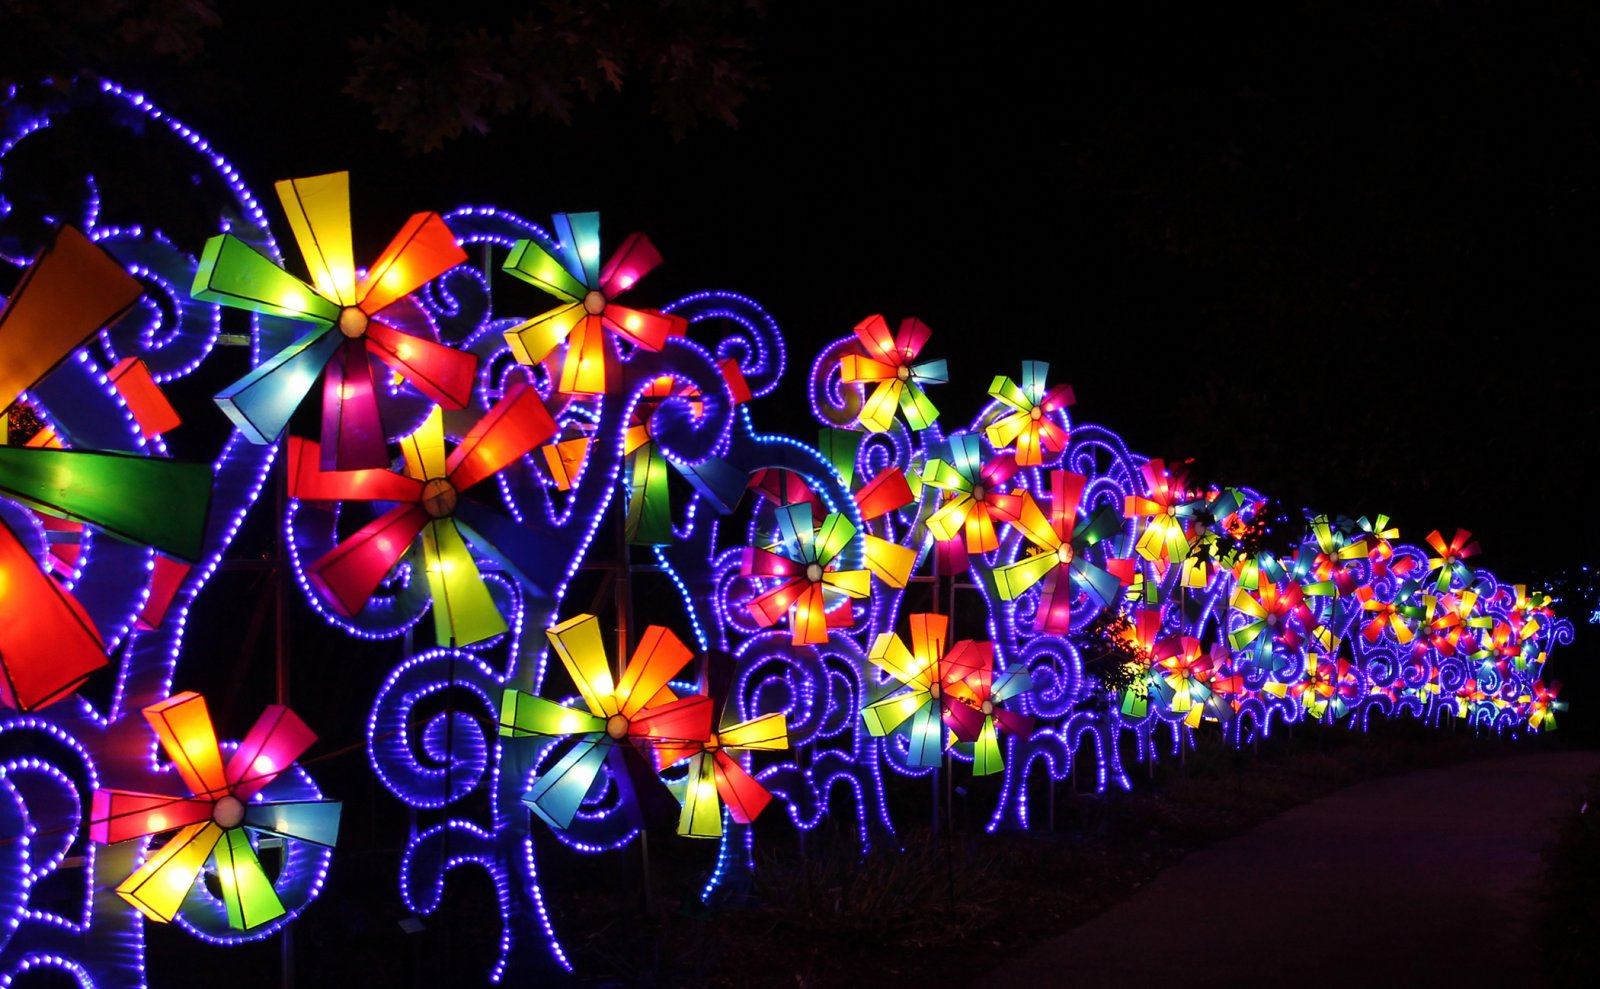 Chinese lantern festival s asian cuisine chicago weekend - China lights boerner botanical gardens ...